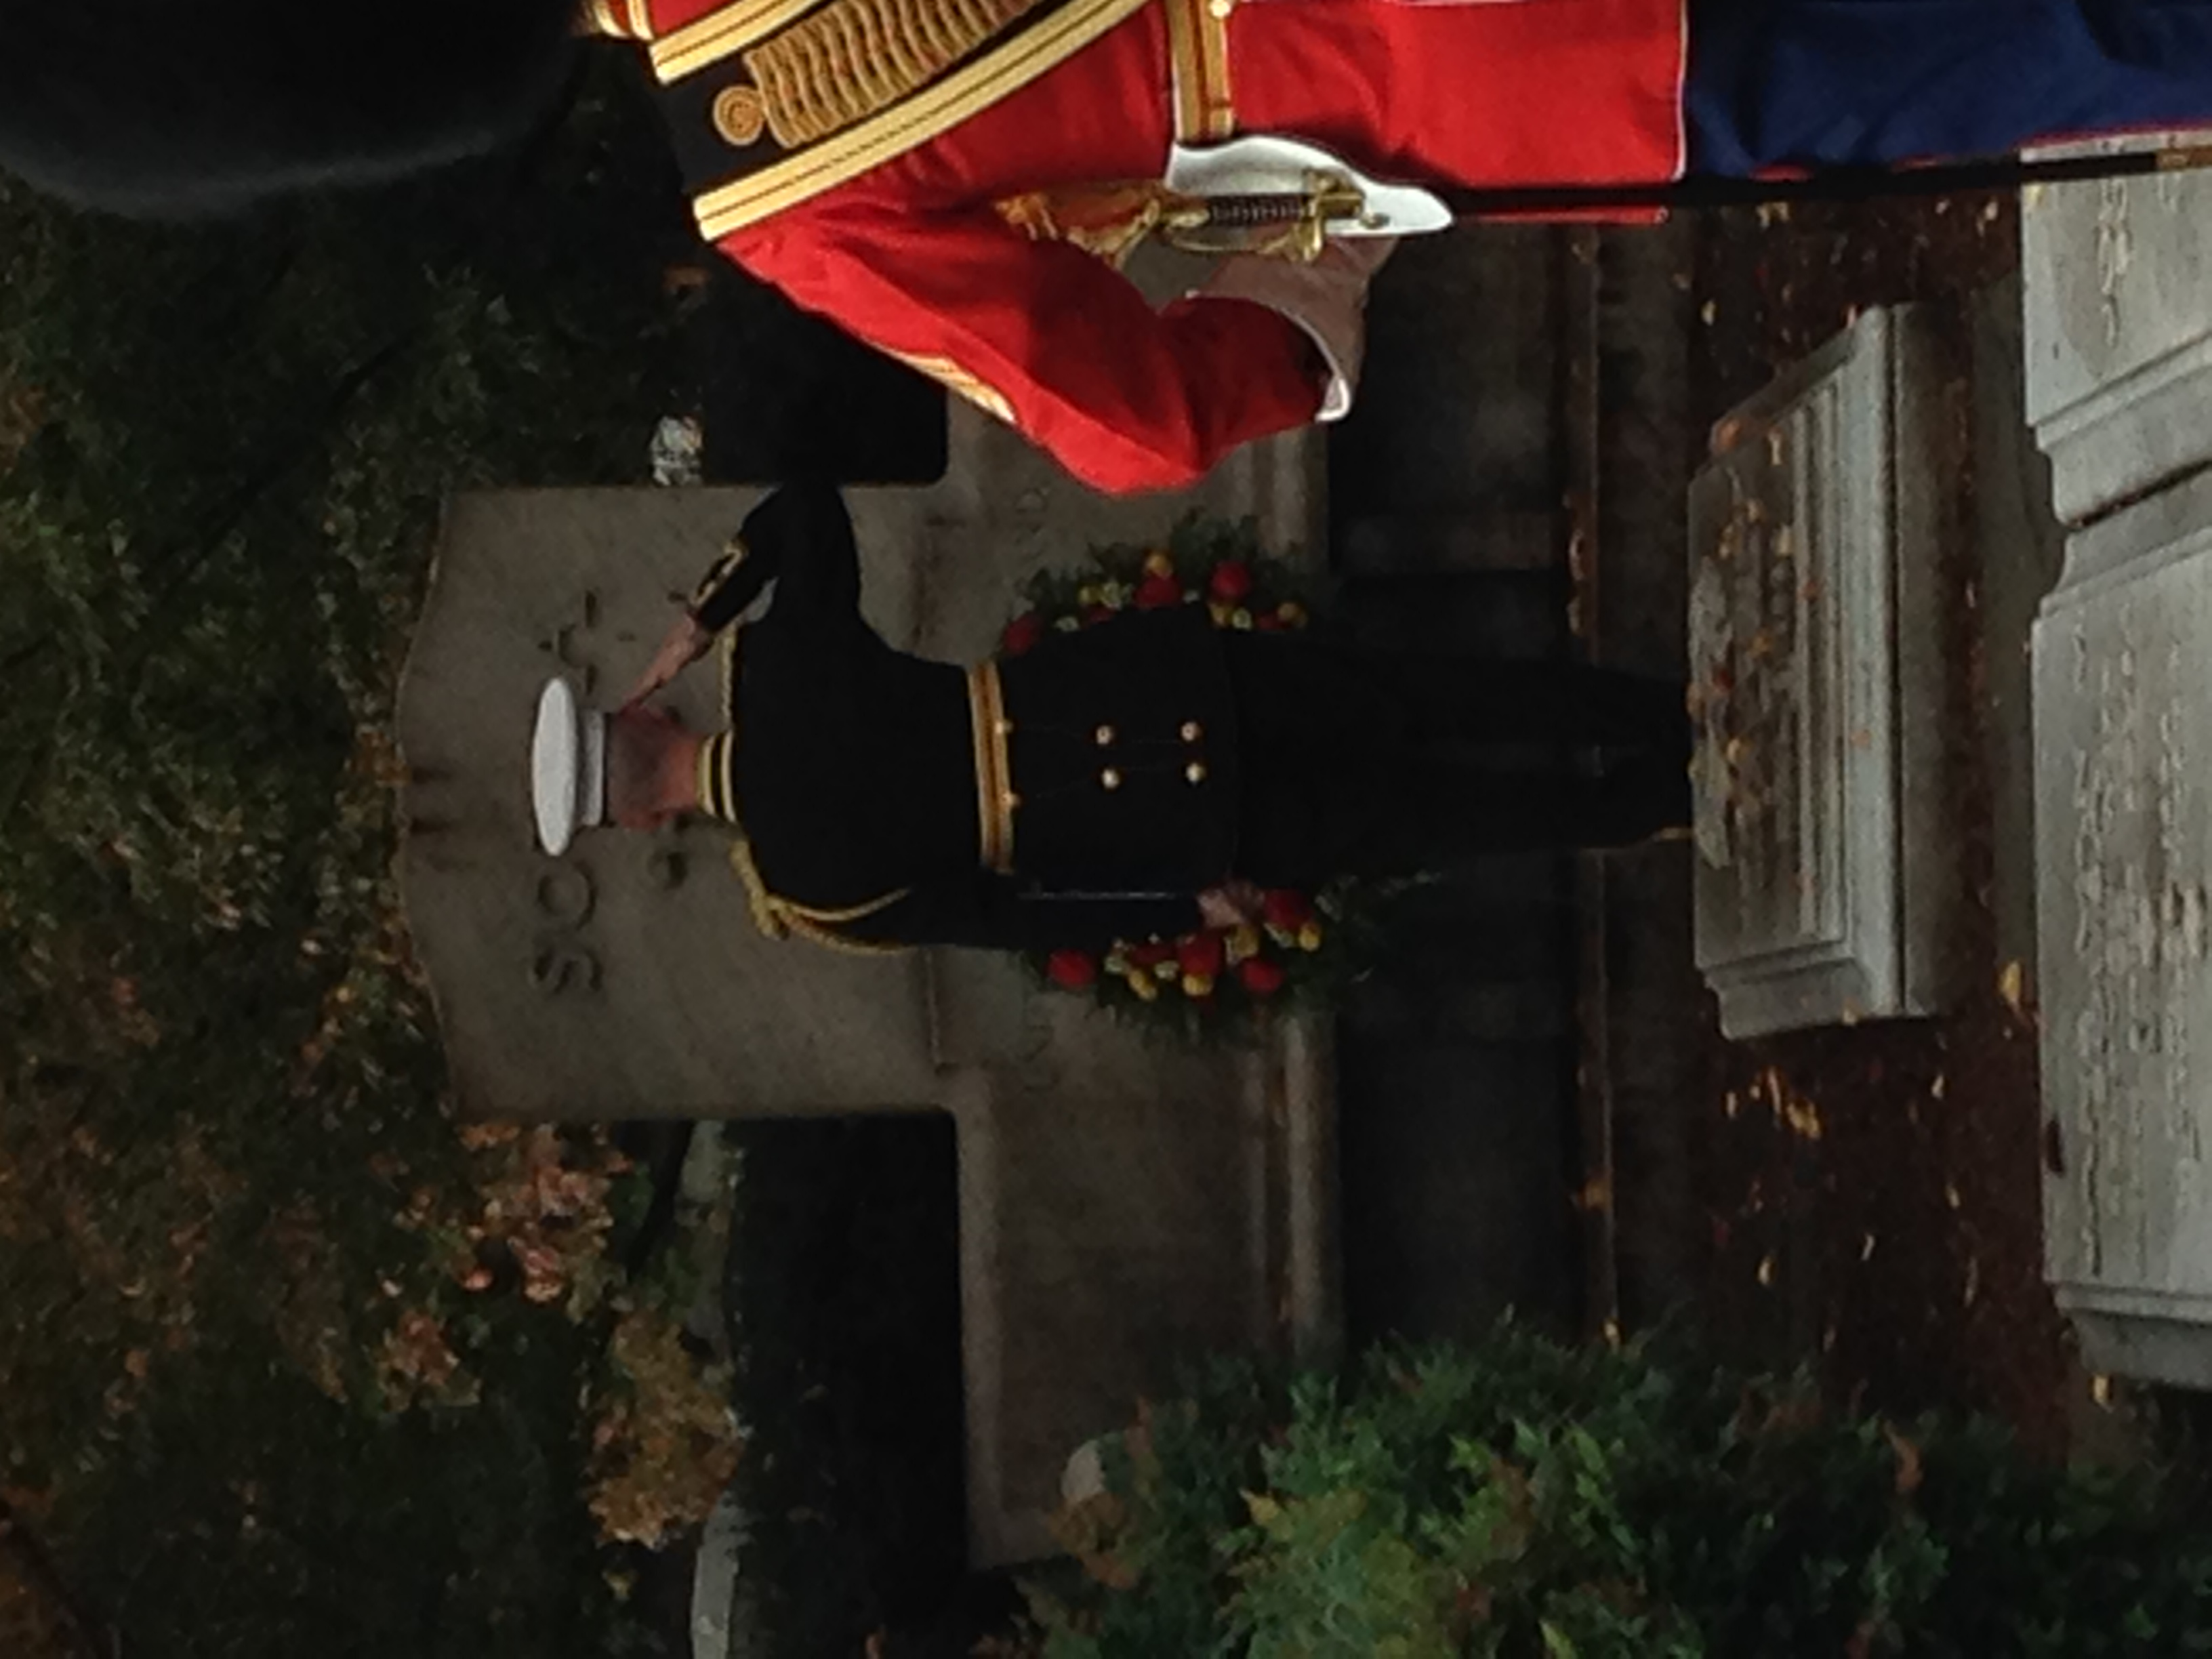 The leader of the band lays a wreath at Sousa's grave and offers a salute.